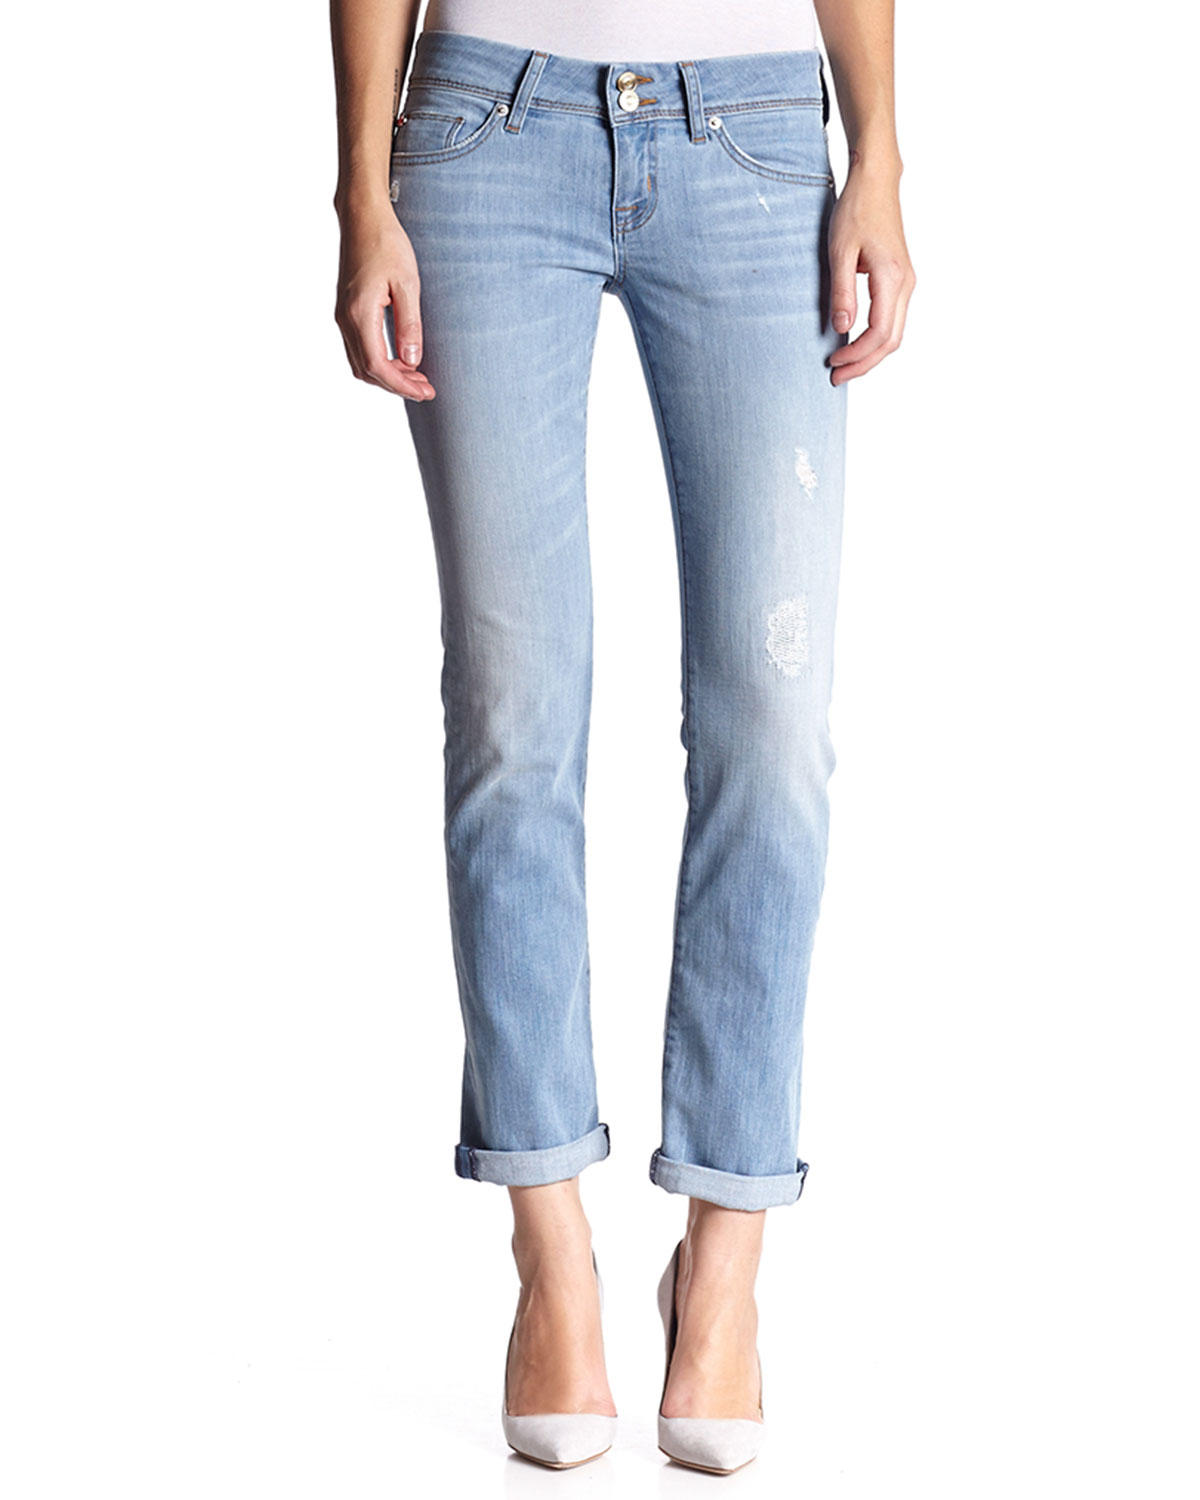 971964b162f Hudson Jeans Ginny Low-rise Crop Ankle Jeans in Blue - Lyst